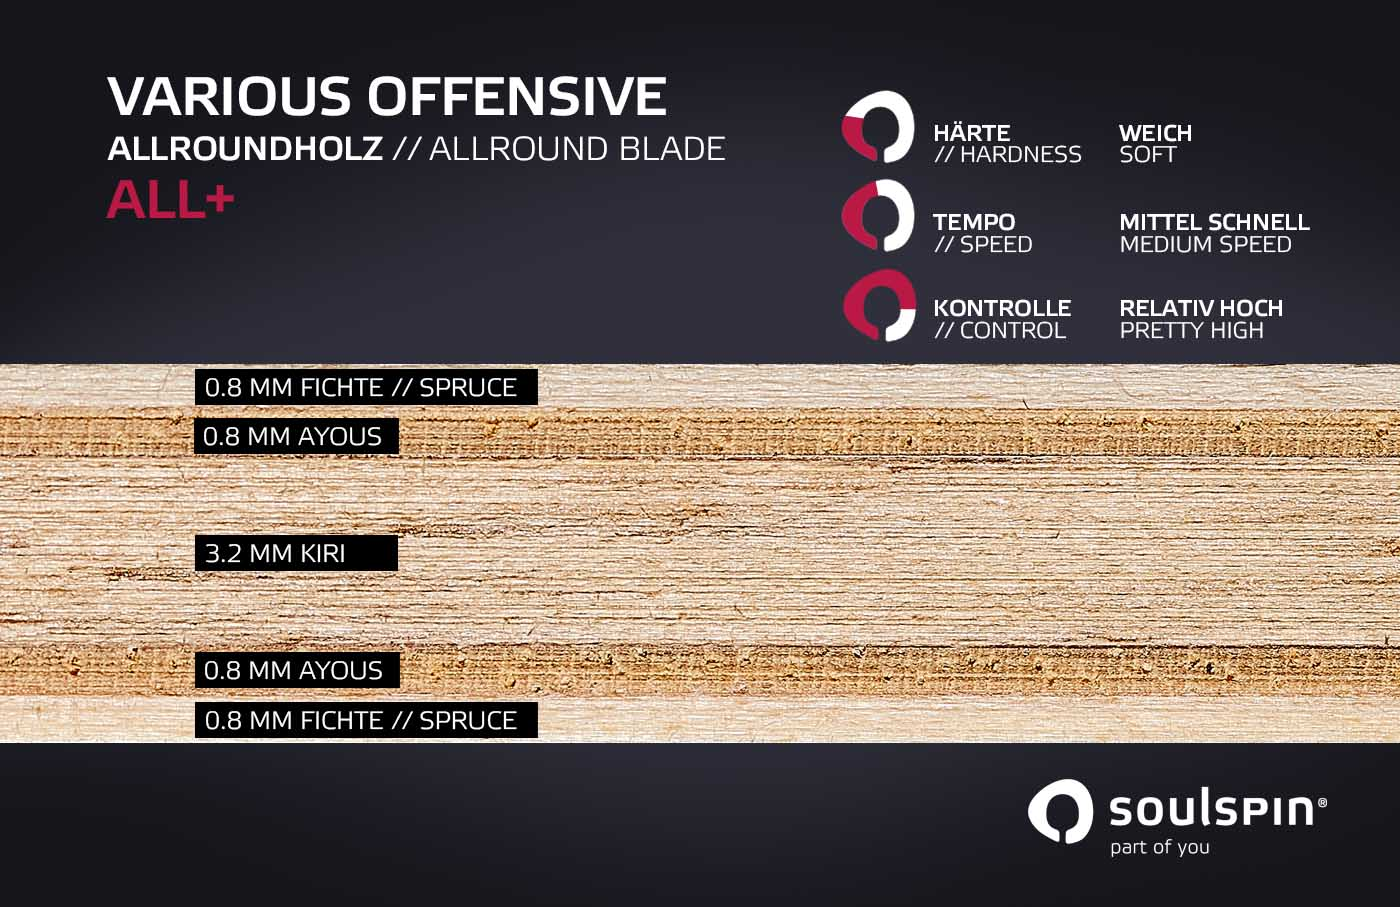 Cross-section and veneers structure of the all-round blade Various Offensive made in Germany by Soulspin